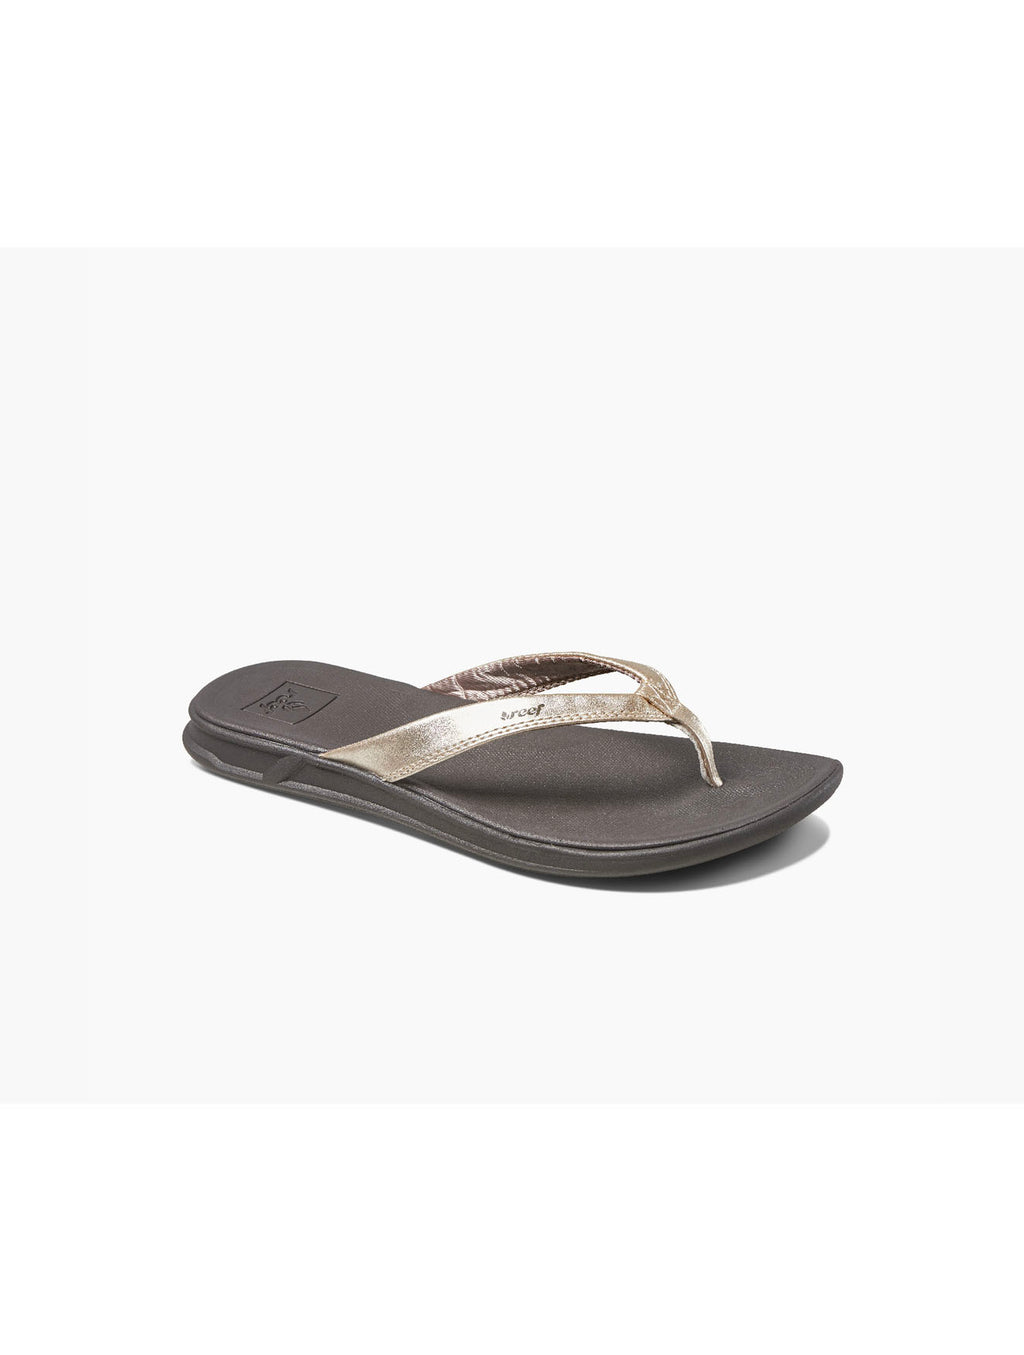 Reef Rover Sandal in Champagne